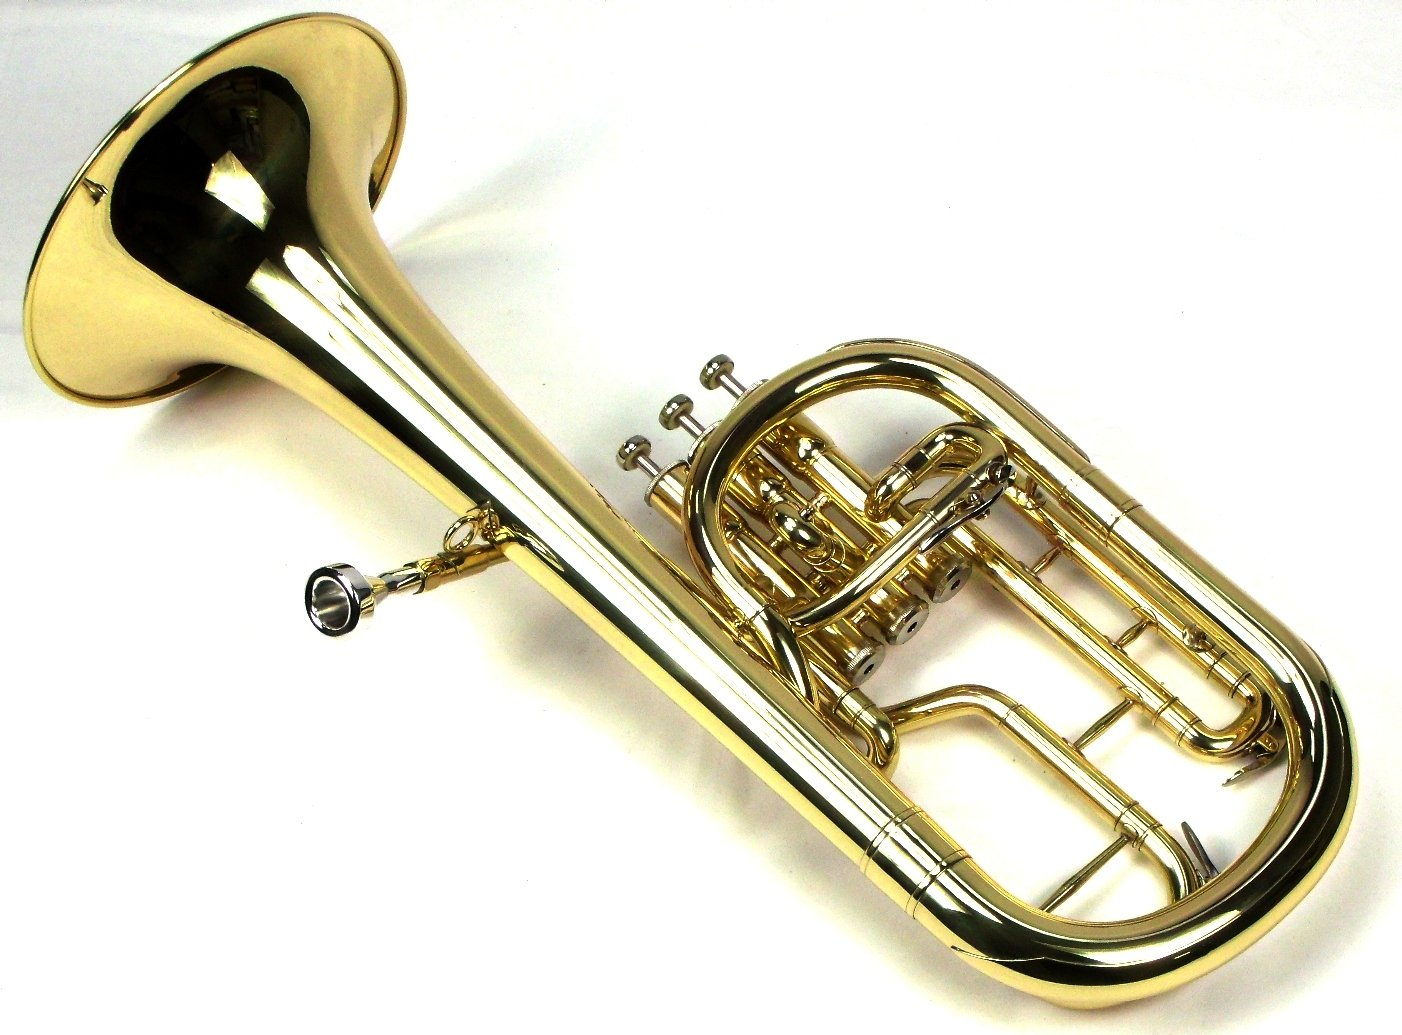 Intermediate Monel Pistons Alto Horn w/Case & Mouthpiece-Gold Lacquer Finish by Moz (Image #6)